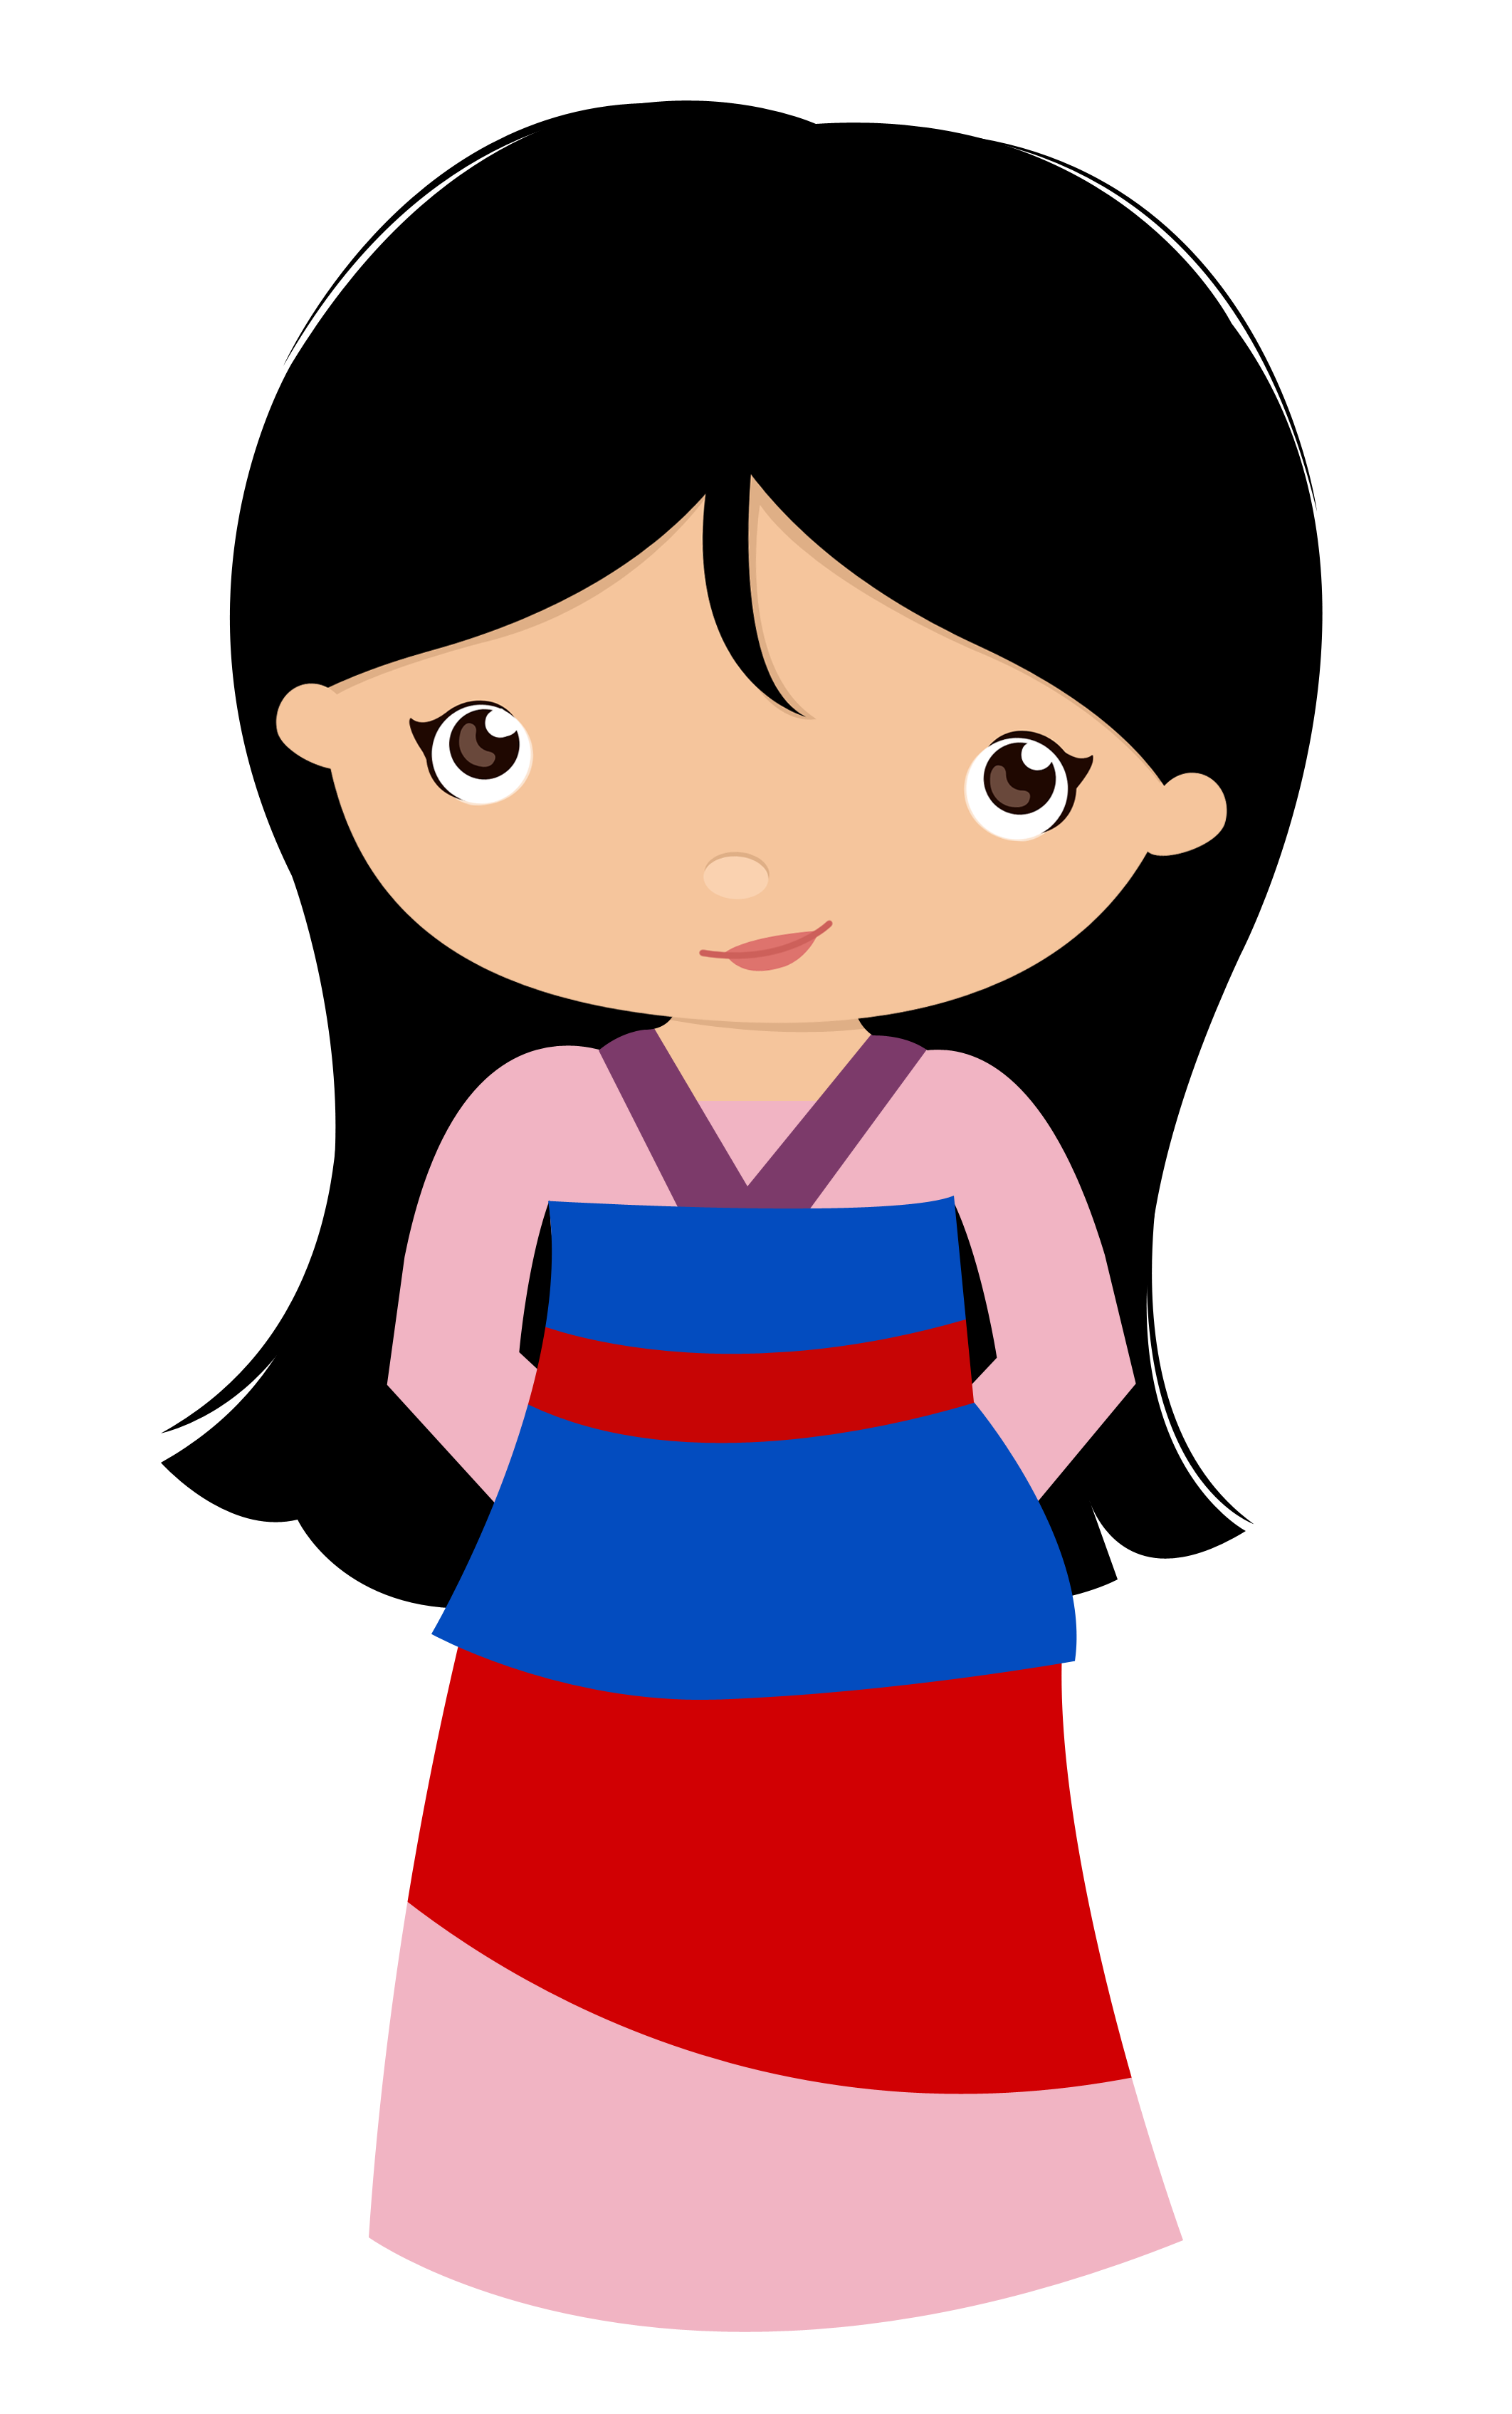 Wet clipart goods. Mulan e pocahontas cat